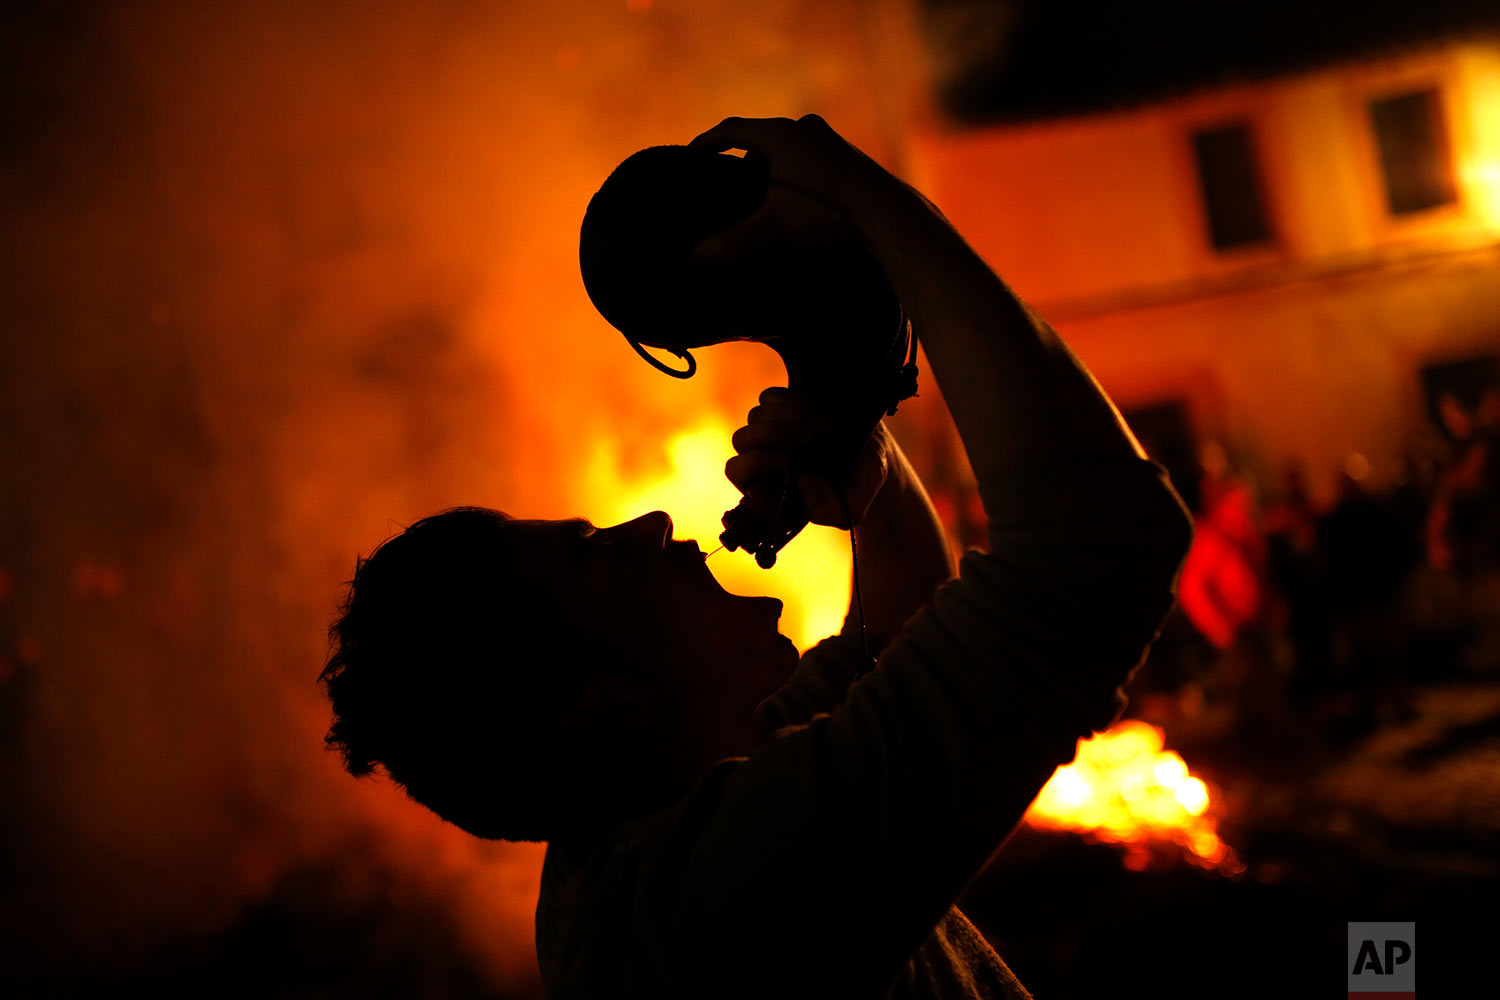 A man drinks wine from a wineskin next to bonfires during the ritual in honor of Saint Anthony the Abbot in San Bartolome de Pinares, Spain, Tuesday, Jan. 16, 2018. (AP Photo/Francisco Seco) |  See these photos on AP Images